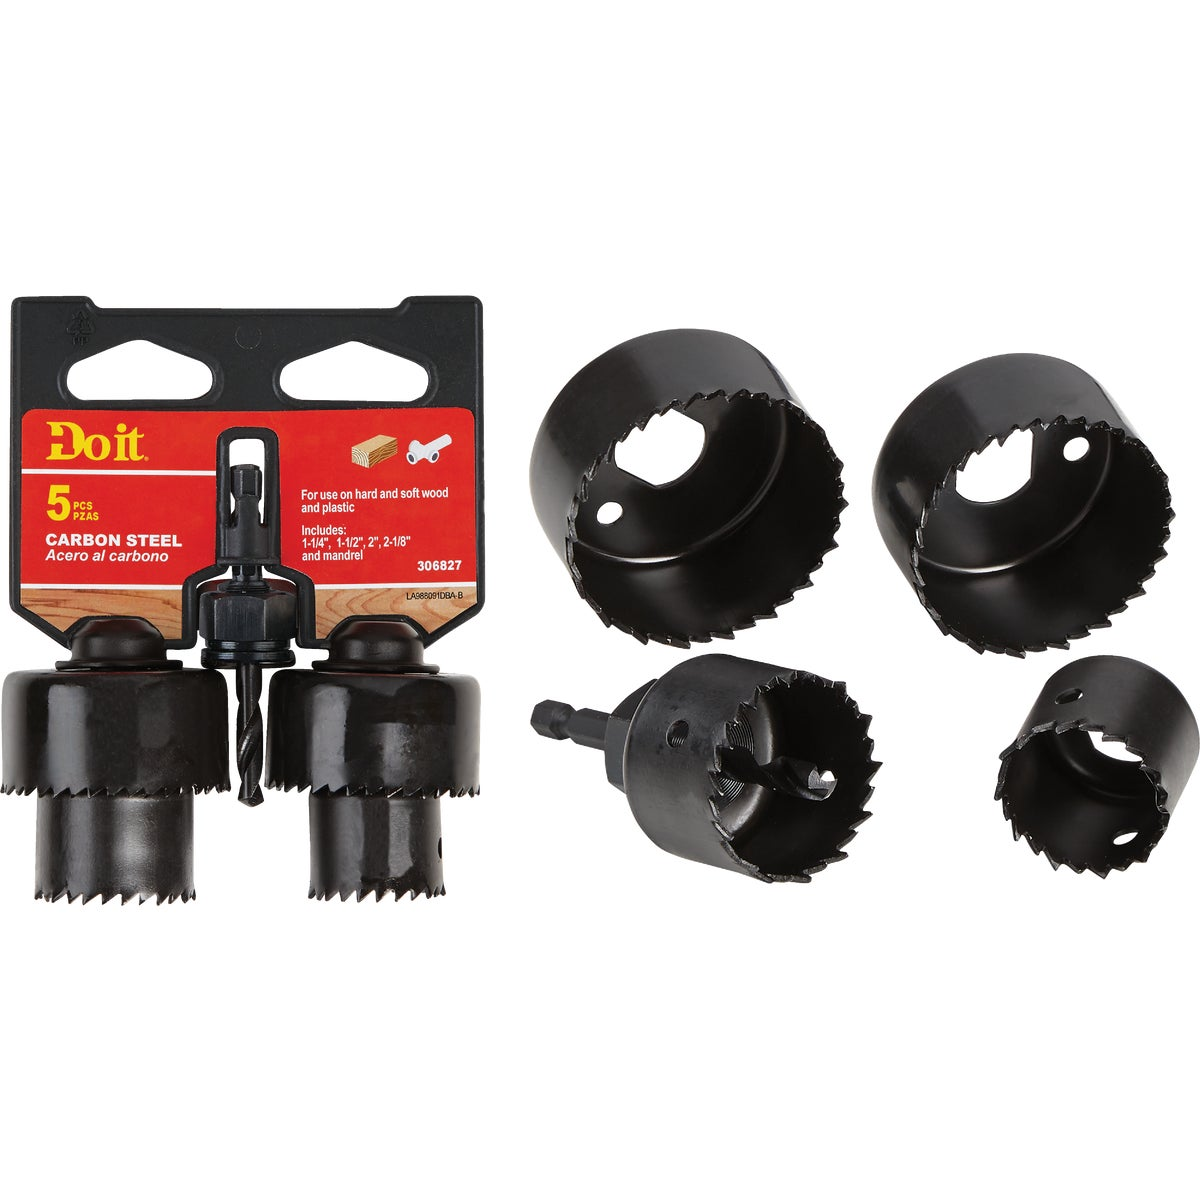 5Pc Hole Saw Set